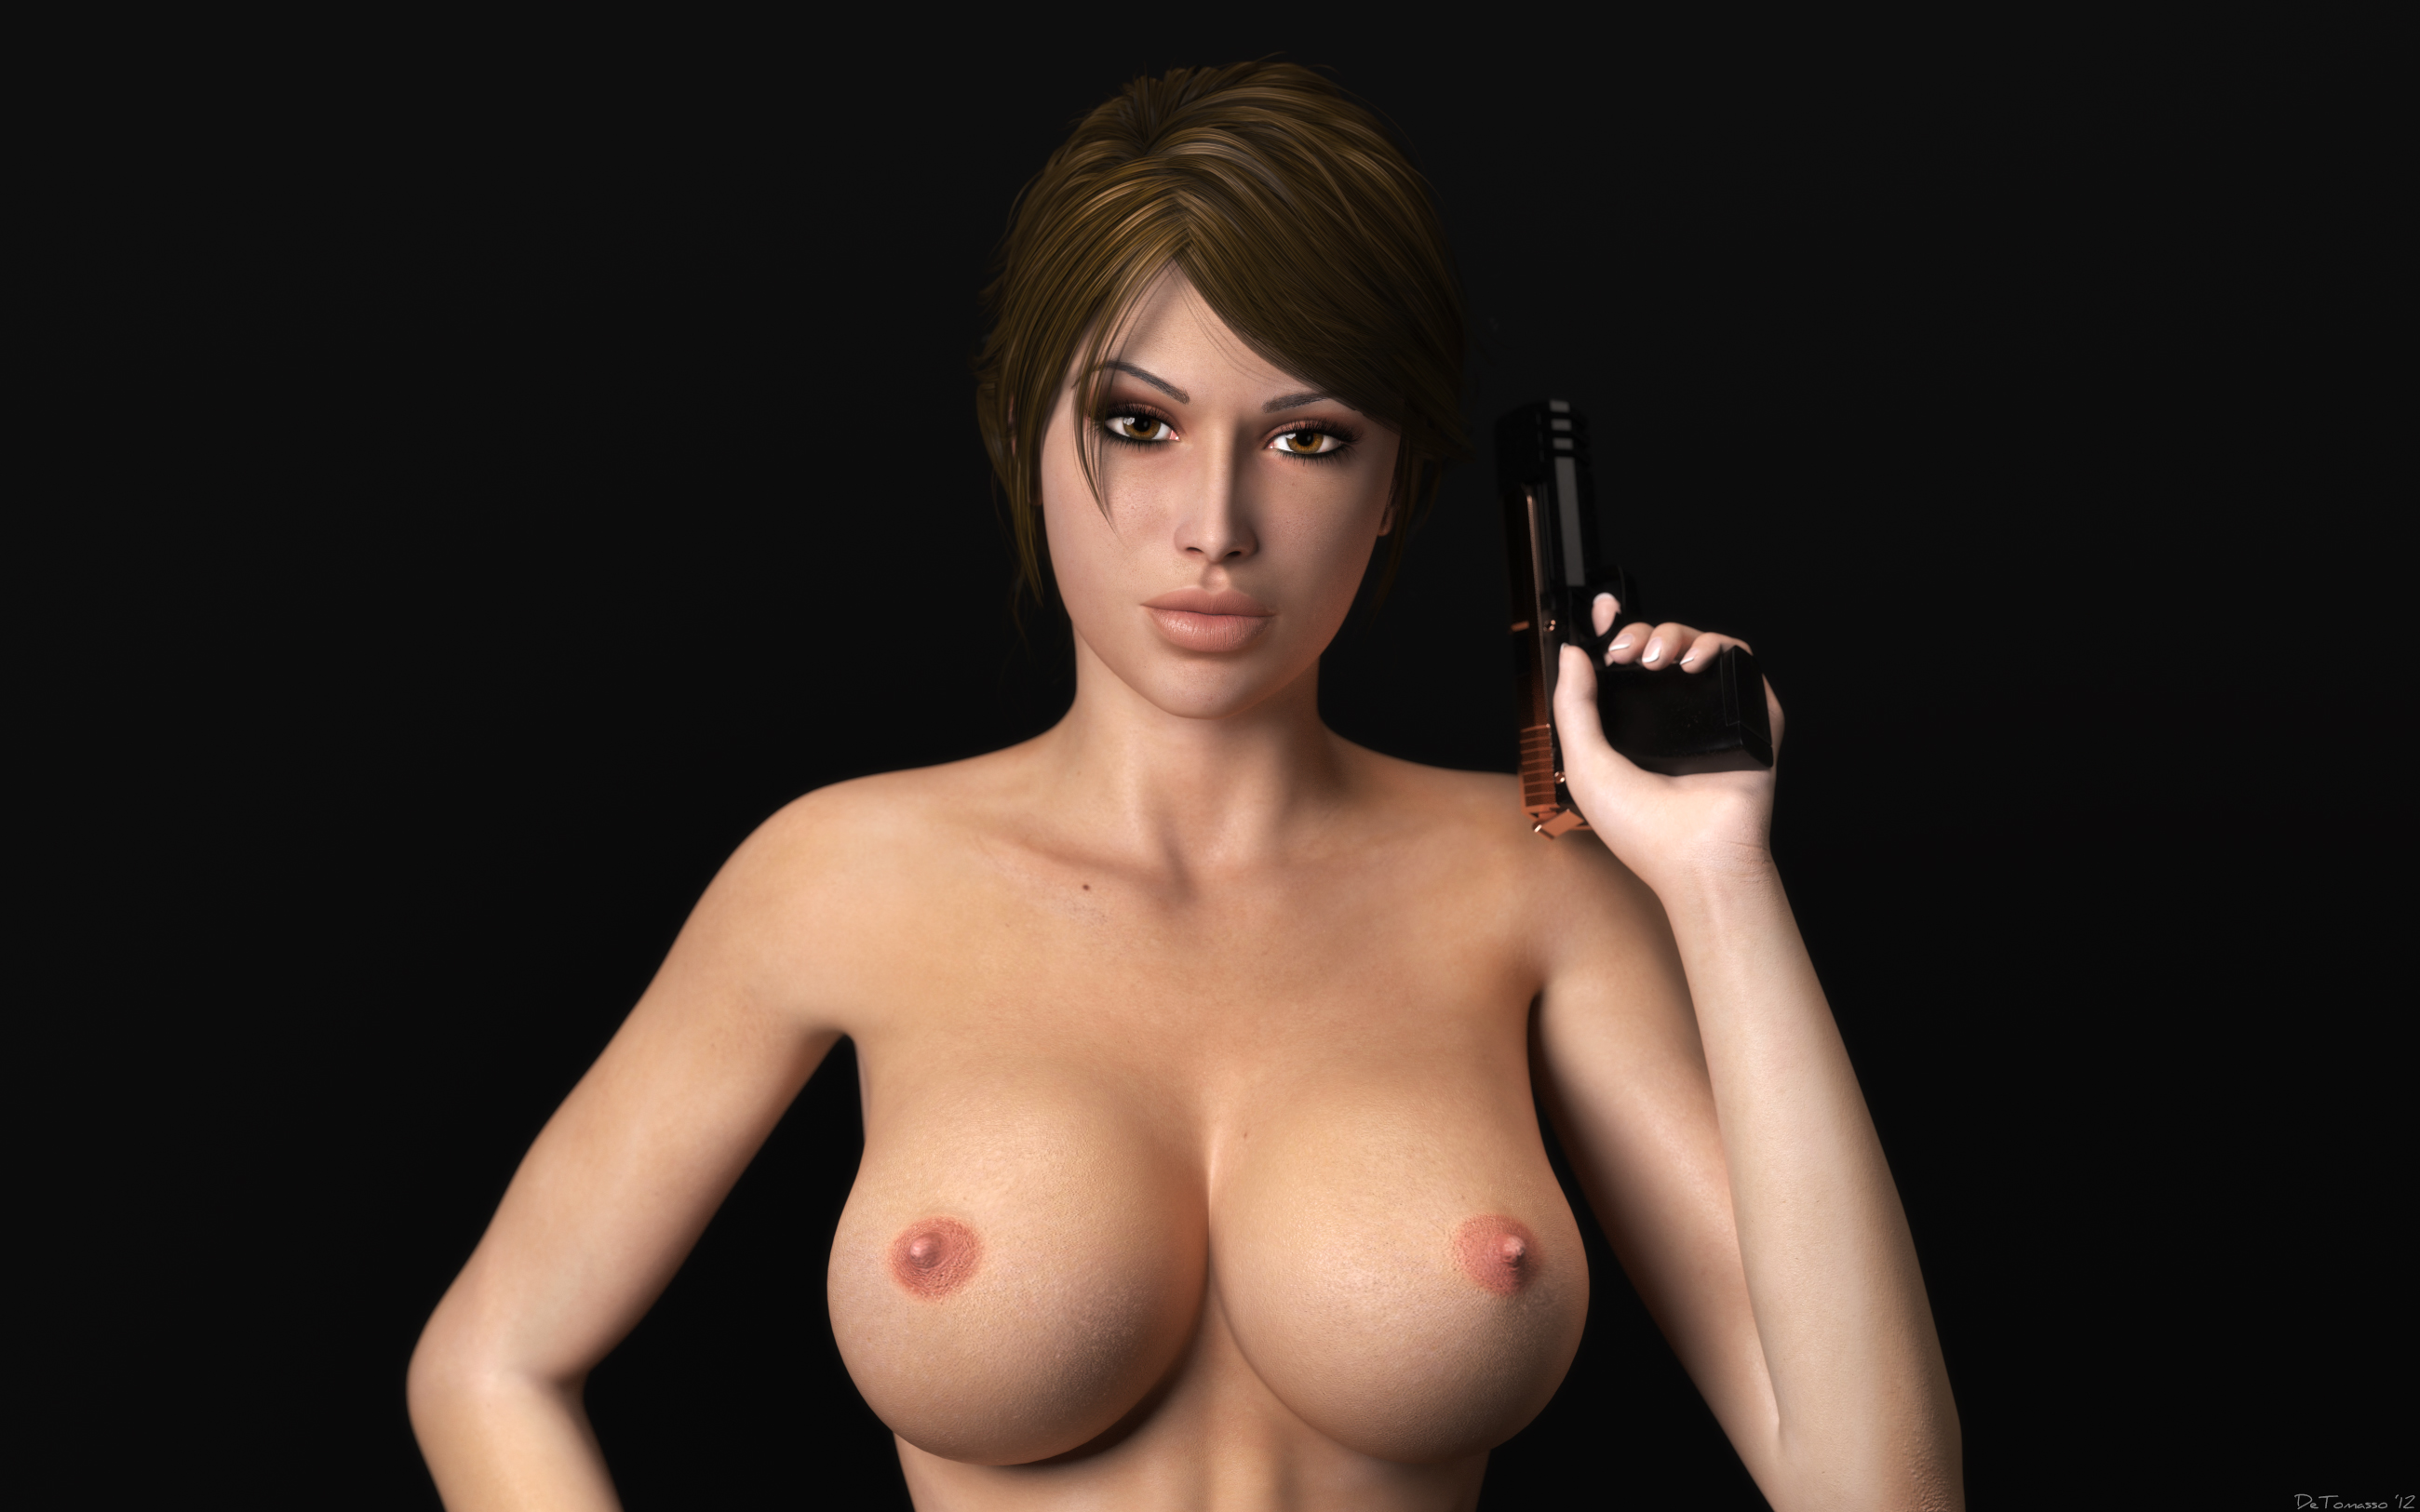 Laura nude lara croft pity